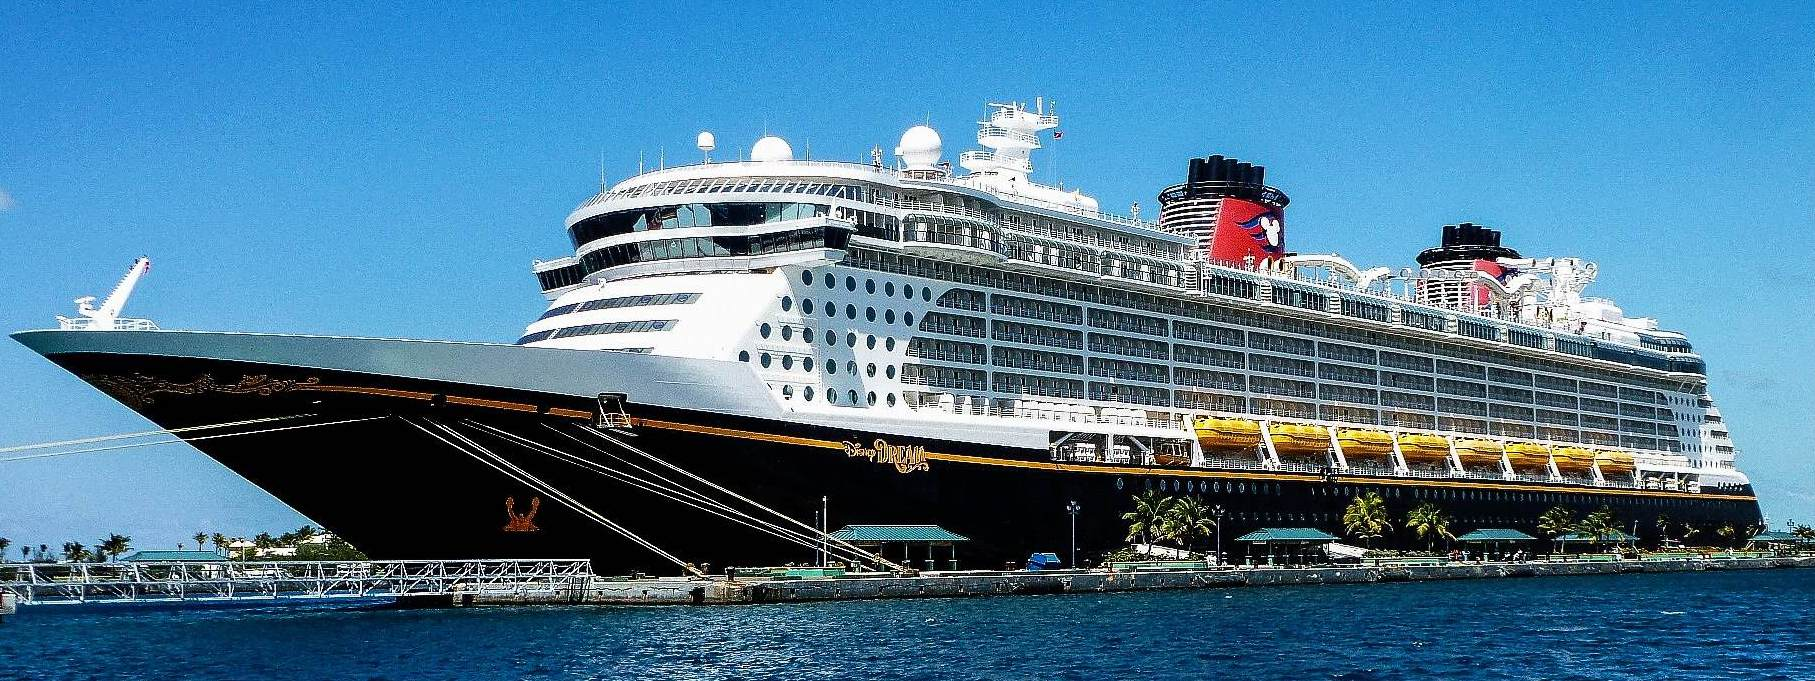 Facts You Probably Did Not Know About Disney Dream Cruise Ship - Azura cruise ship wiki